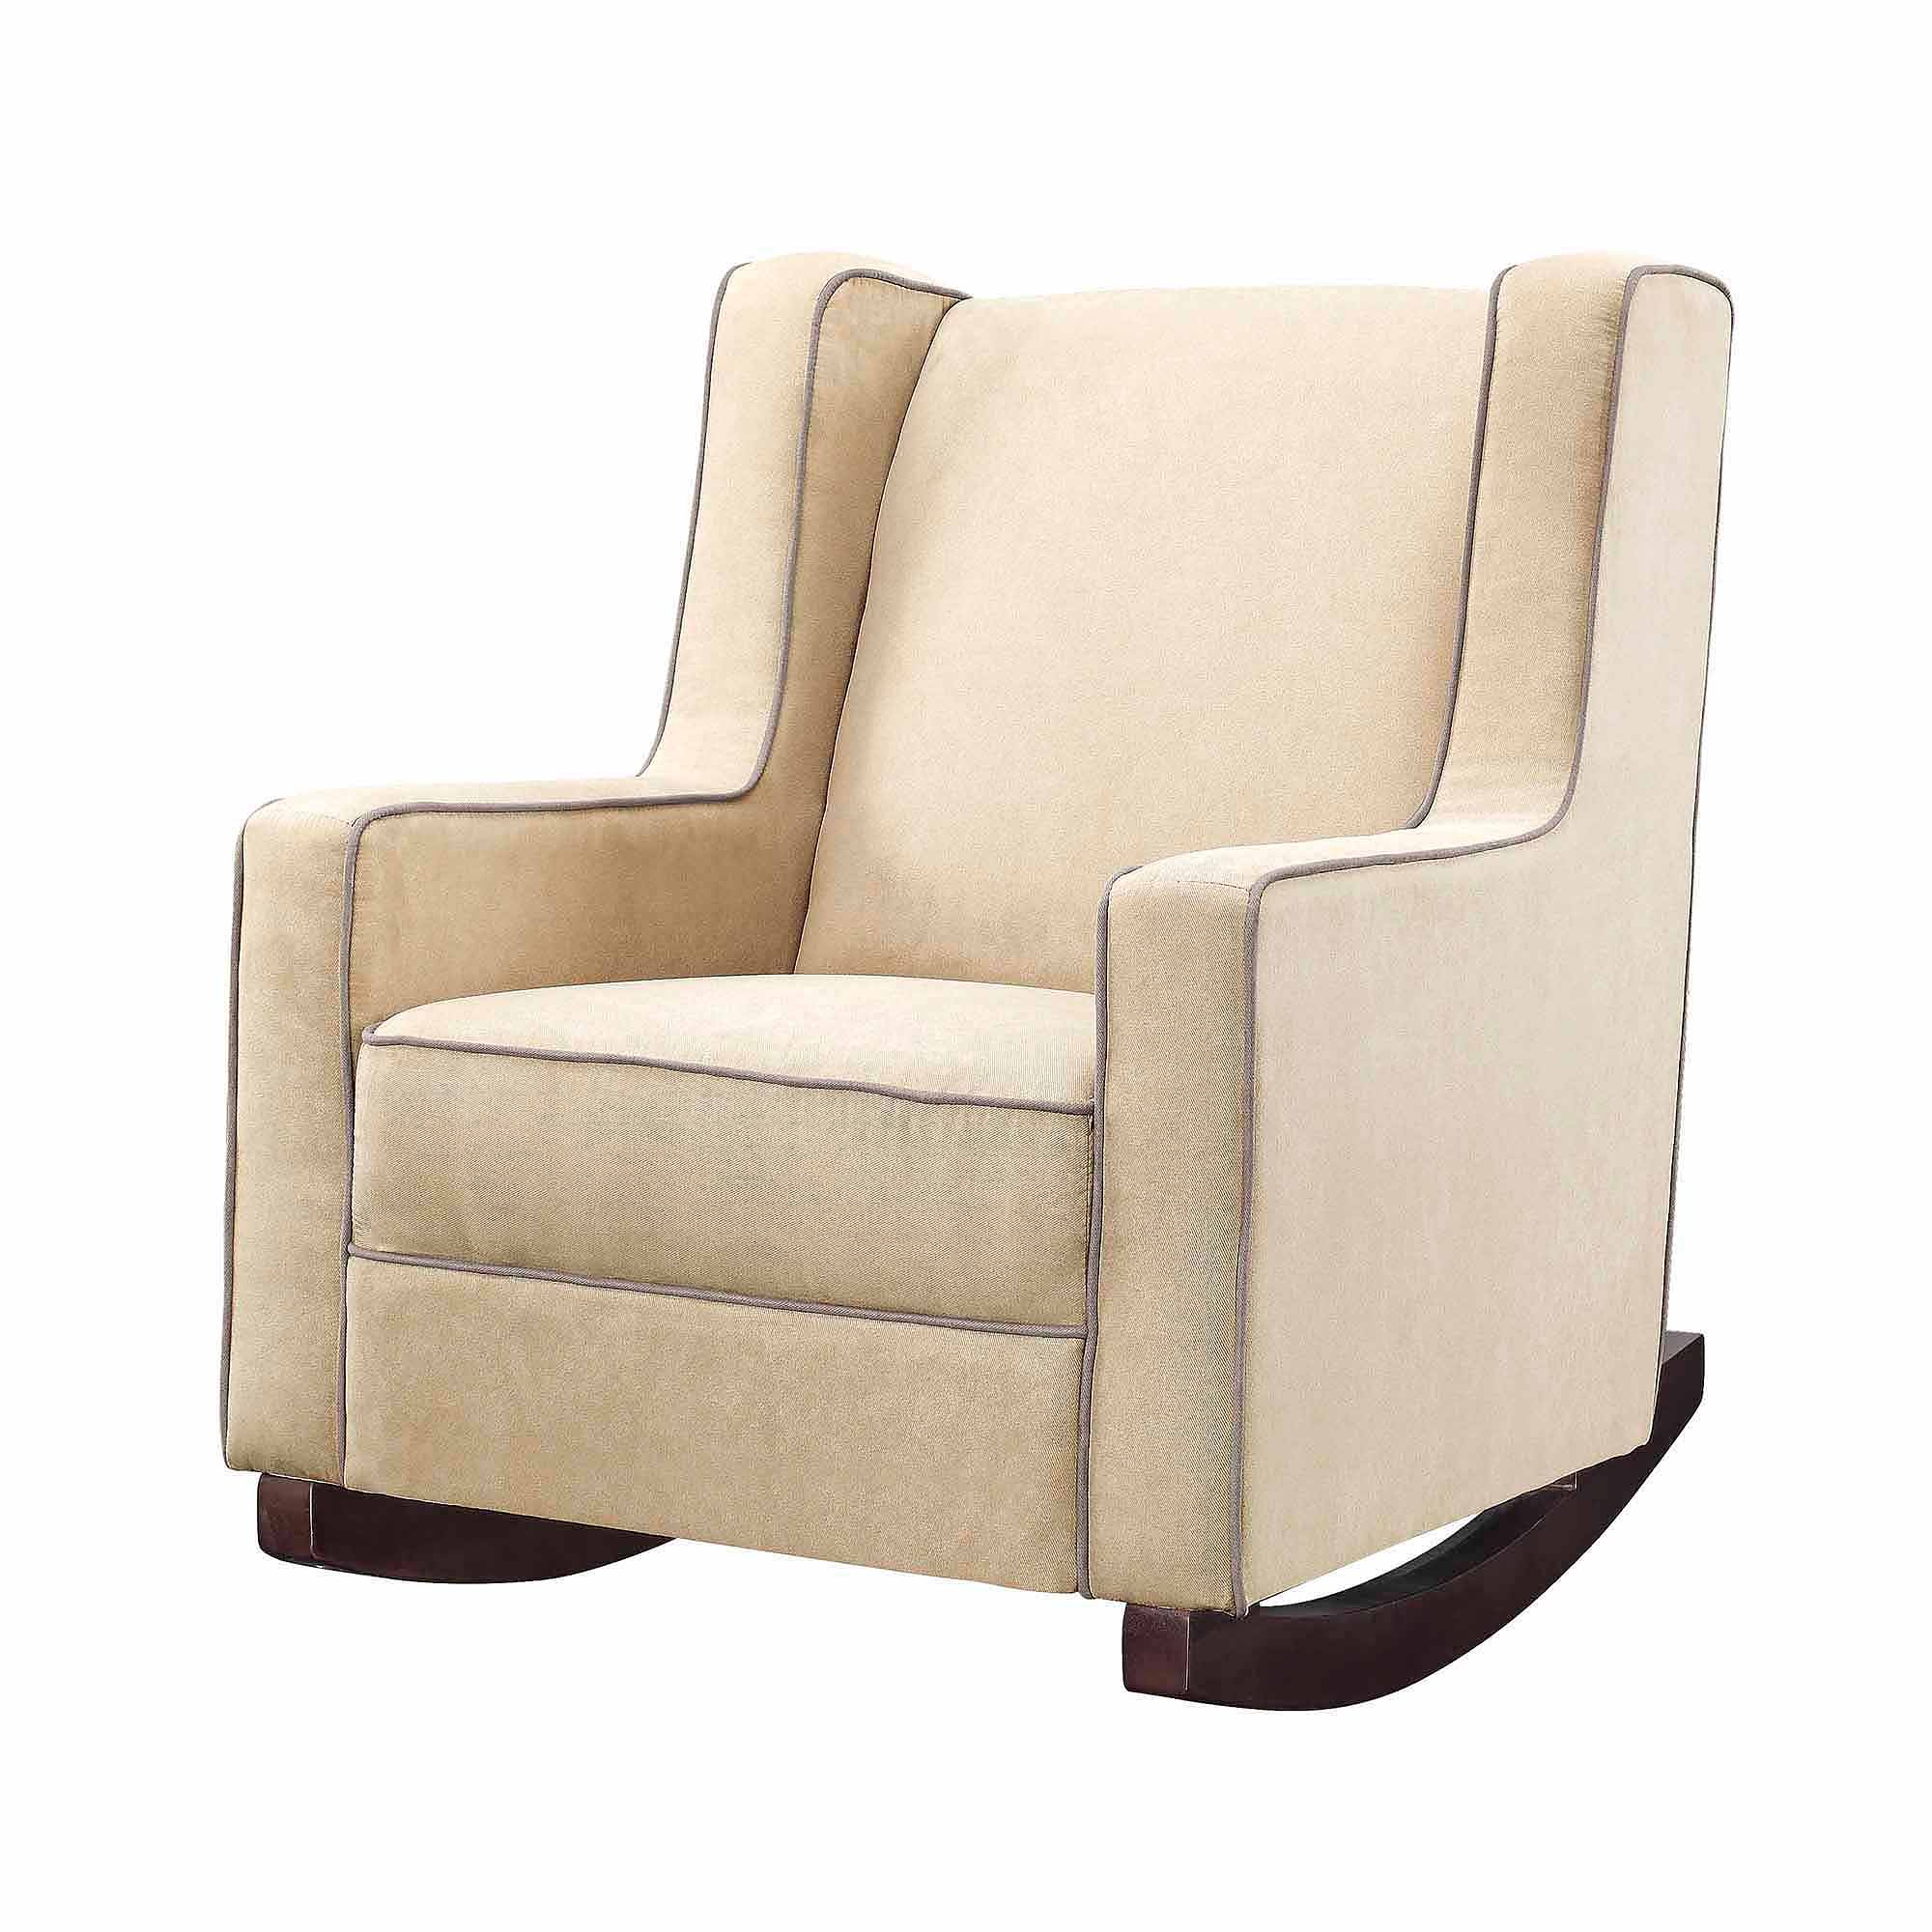 Best And Newest Abbey Swivel Glider Recliners Pertaining To Baby Relax Abby Rocker – Walmart (View 10 of 20)